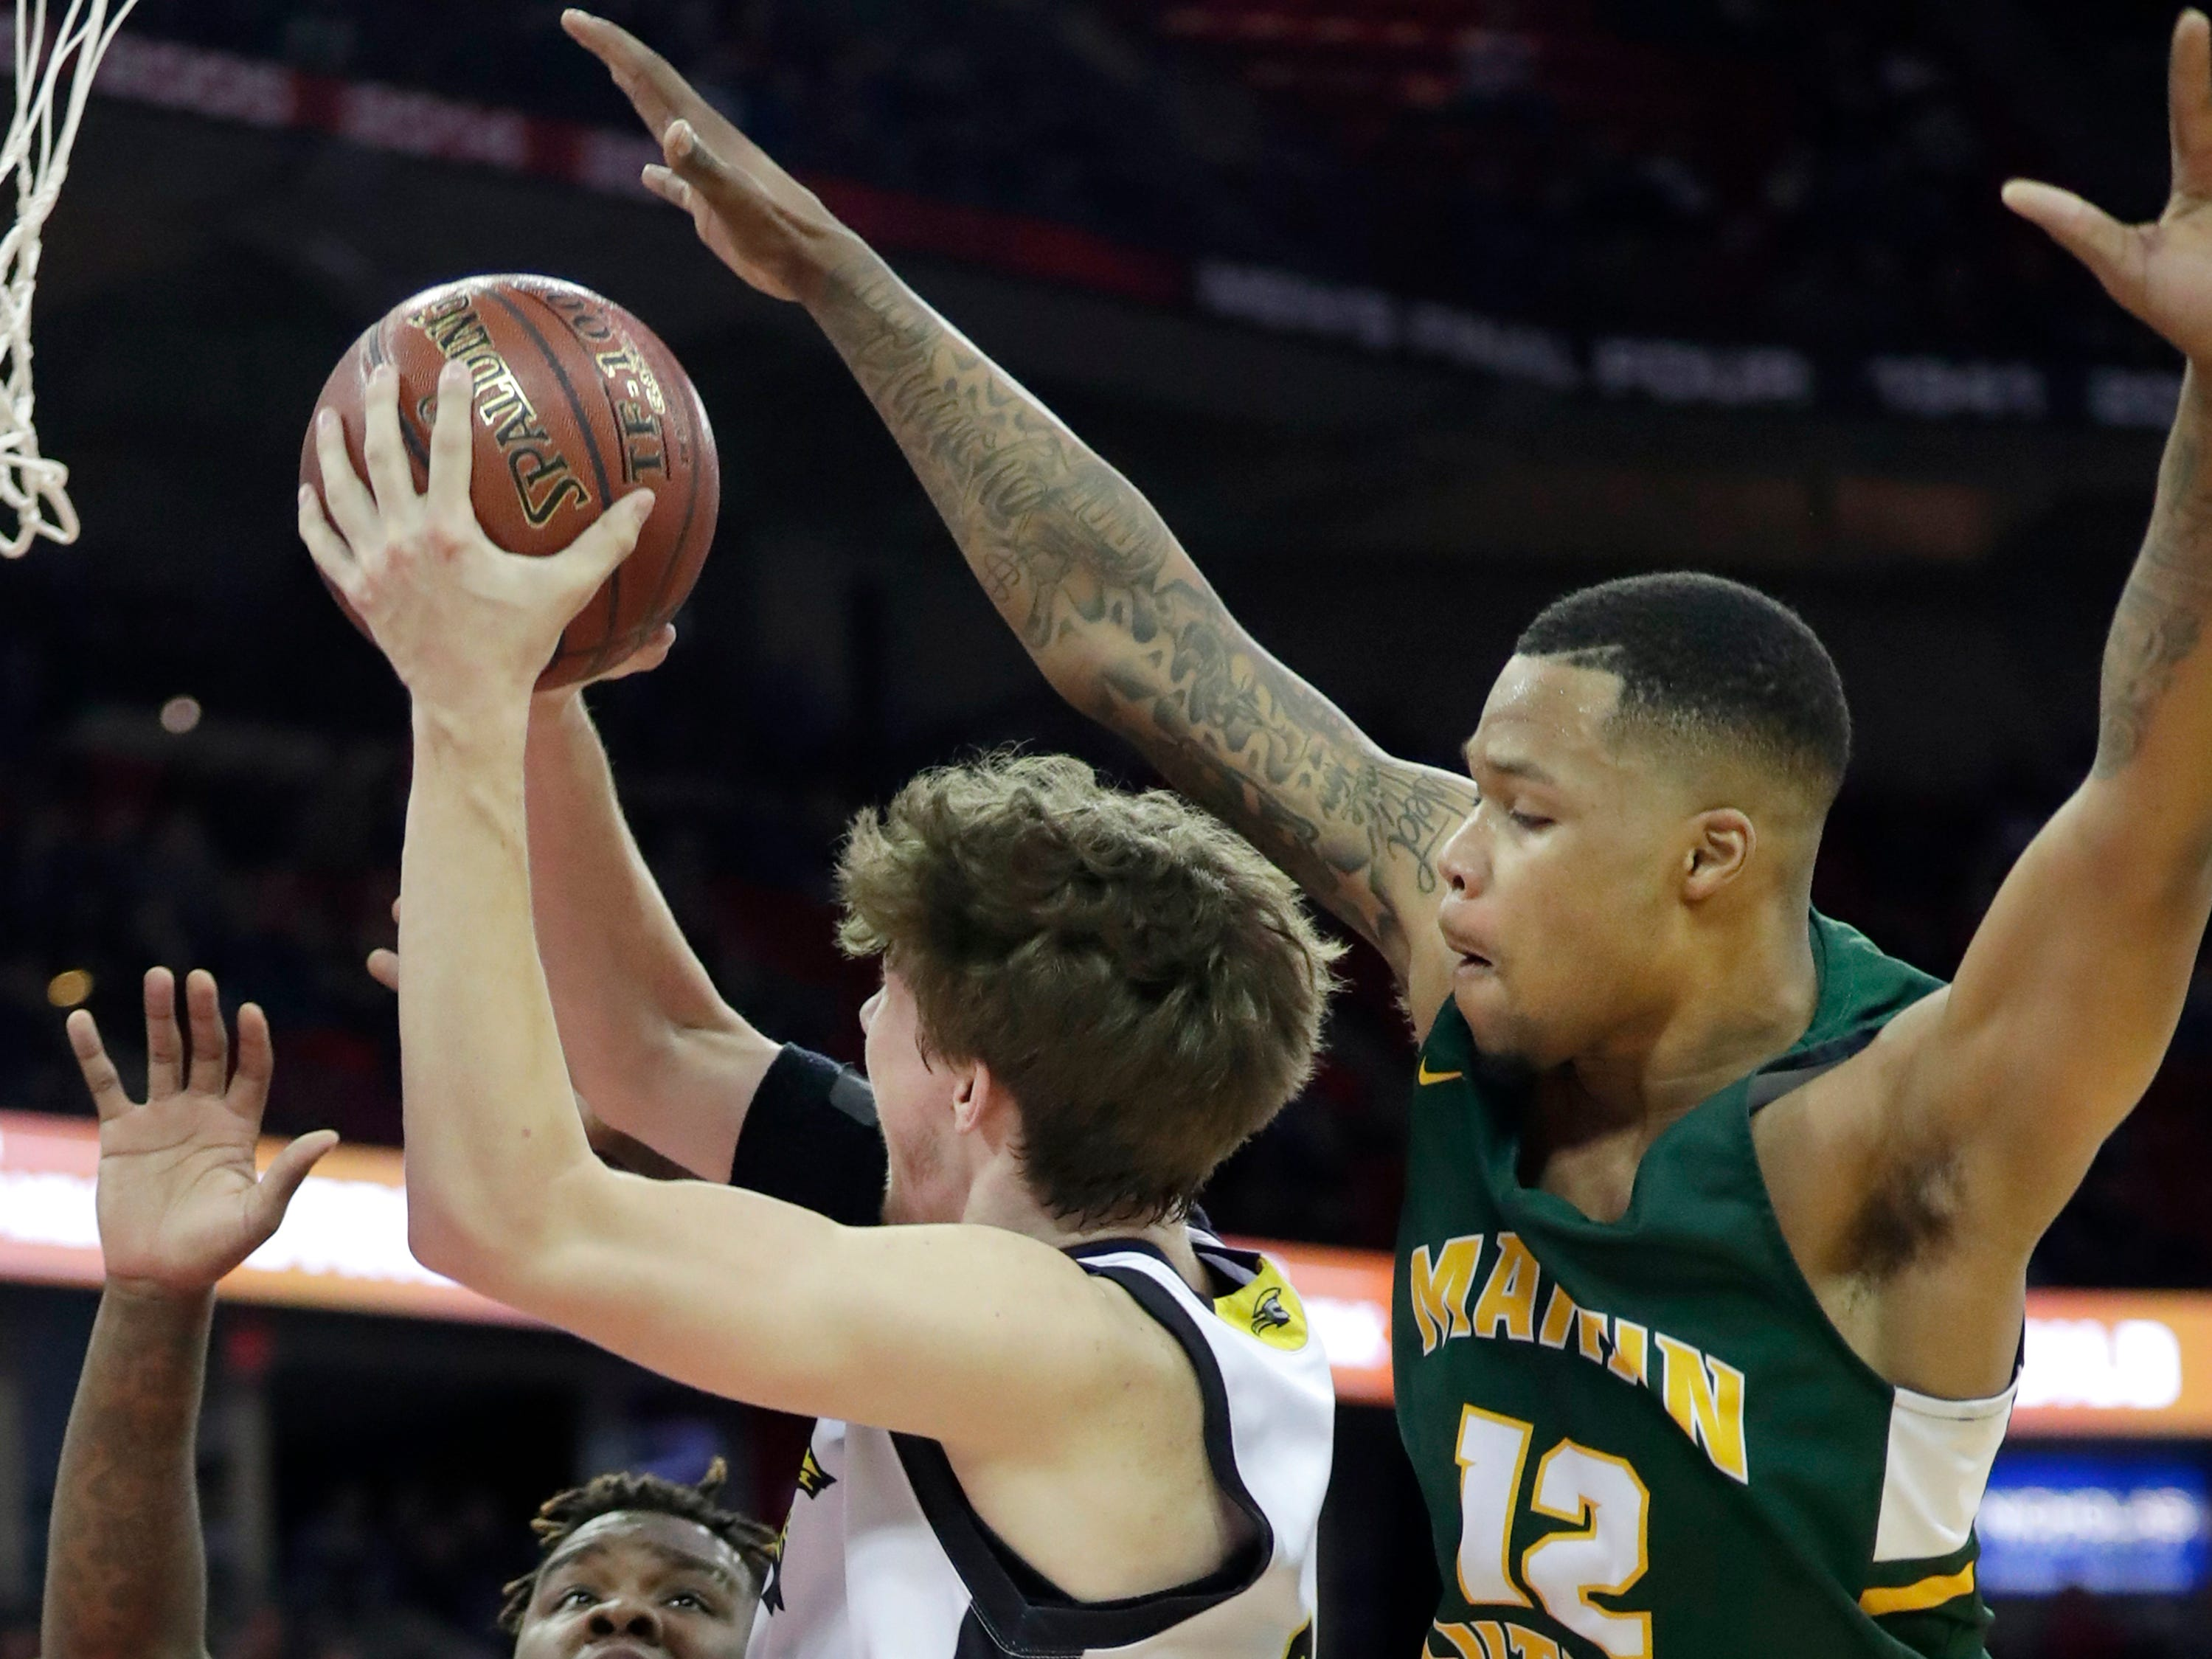 Waupun High School's #23 Reece Homan against Martin Luther High School's #24 Jeramie King and #12 Shaun Harrison during their WIAA Division 3 boys basketball state championship game on Saturday, March 15, 2019, at the Kohl Center in Madison, Wis.Wm. Glasheen/USA TODAY NETWORK-Wisconsin.